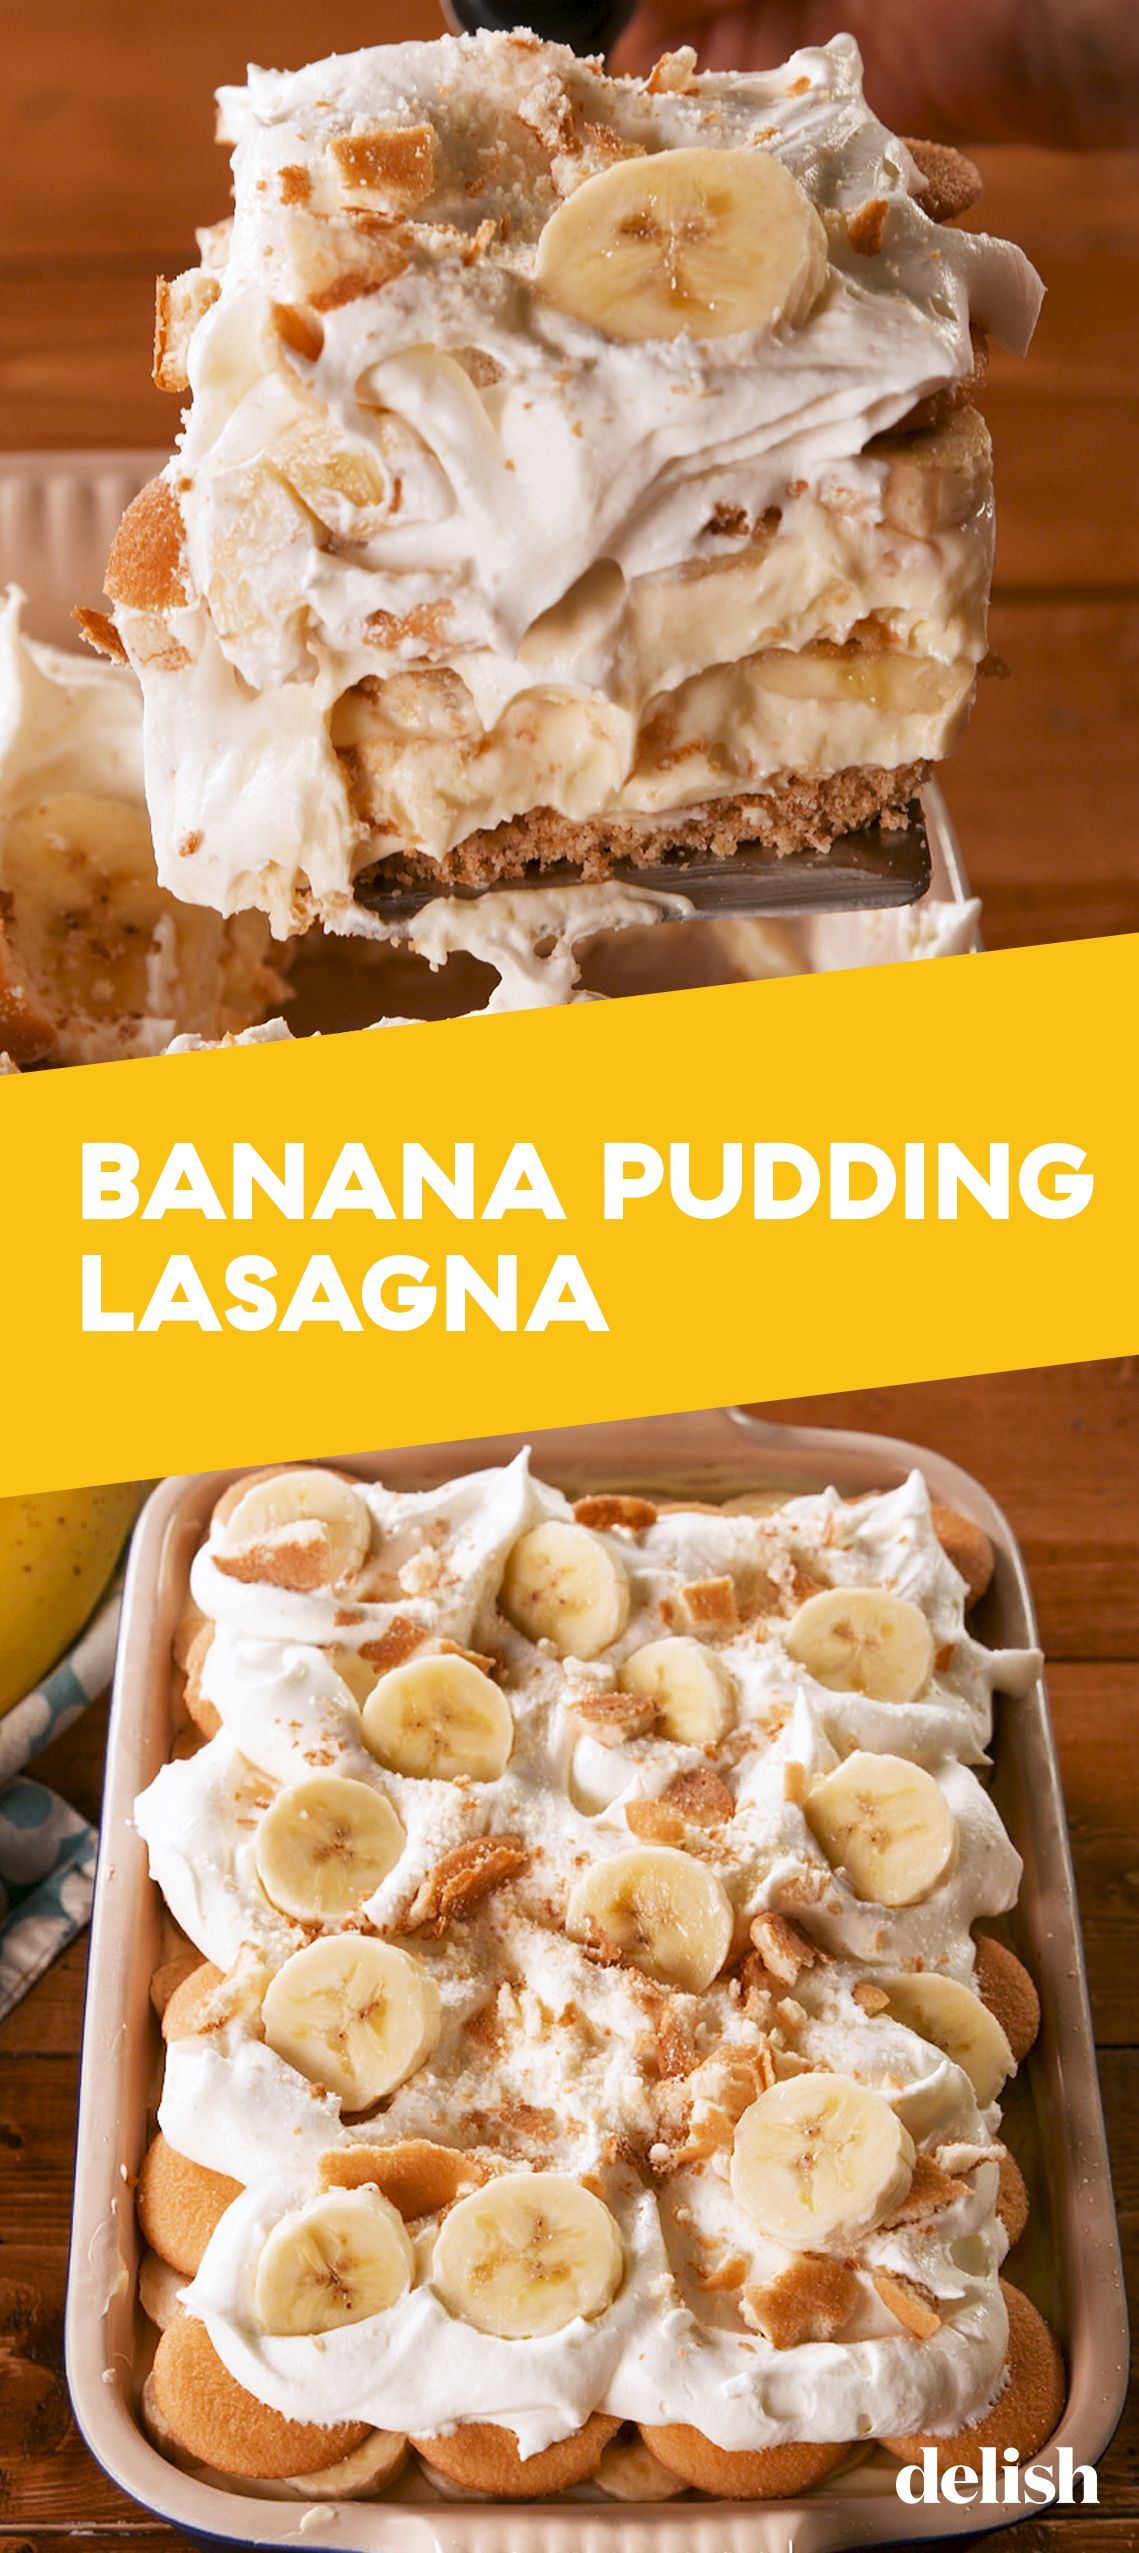 Banana Pudding Lasagna